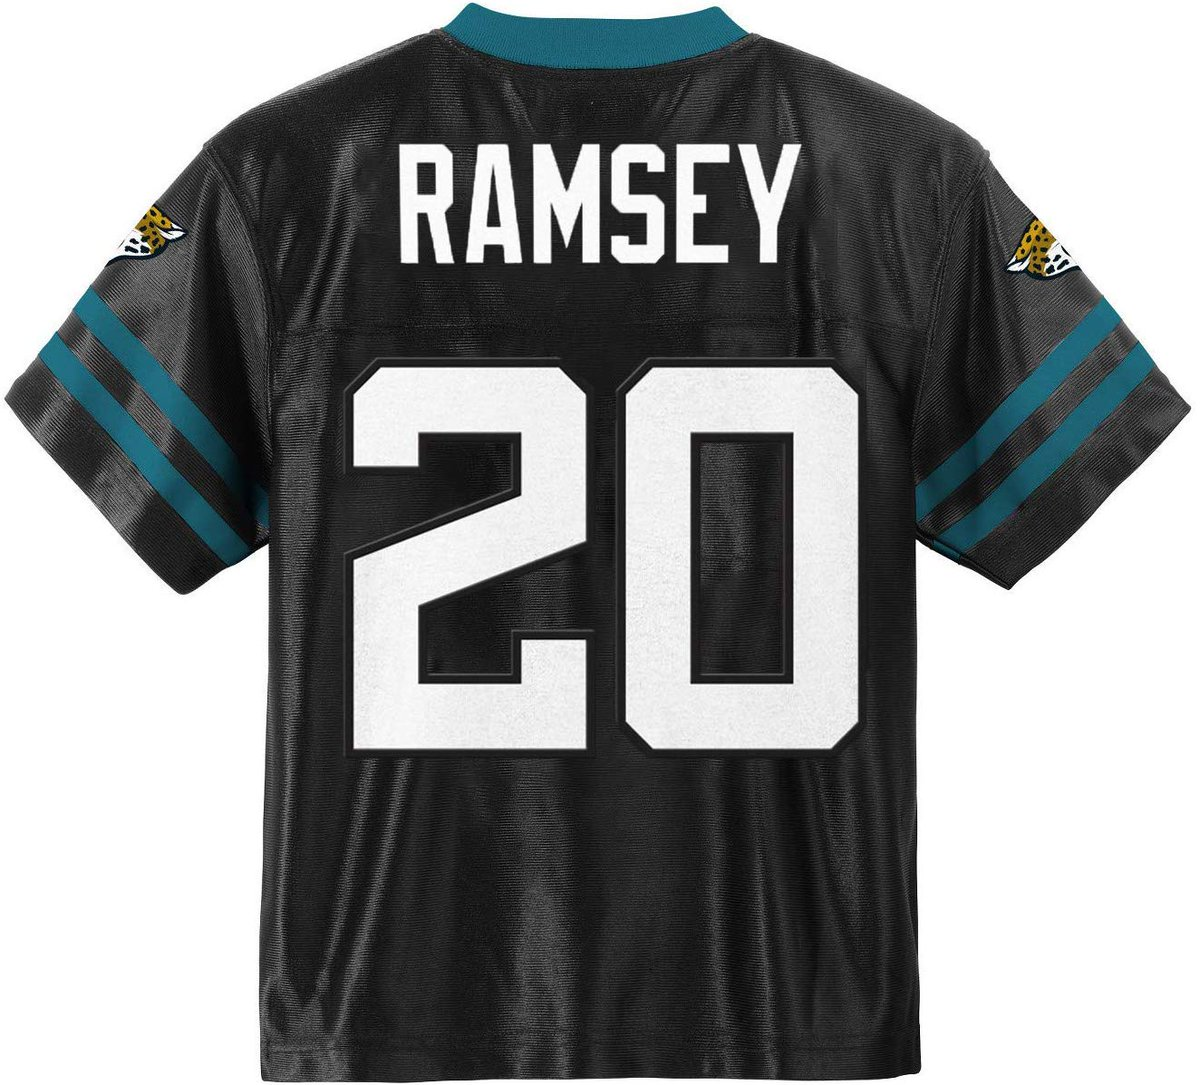 FLASH SALE!!!  Get a @jalenramsey jersey for cheap!!!  *Free shipping to LA.   https:// amzn.to/31jqWyq    <br>http://pic.twitter.com/IS5WK7uOmP